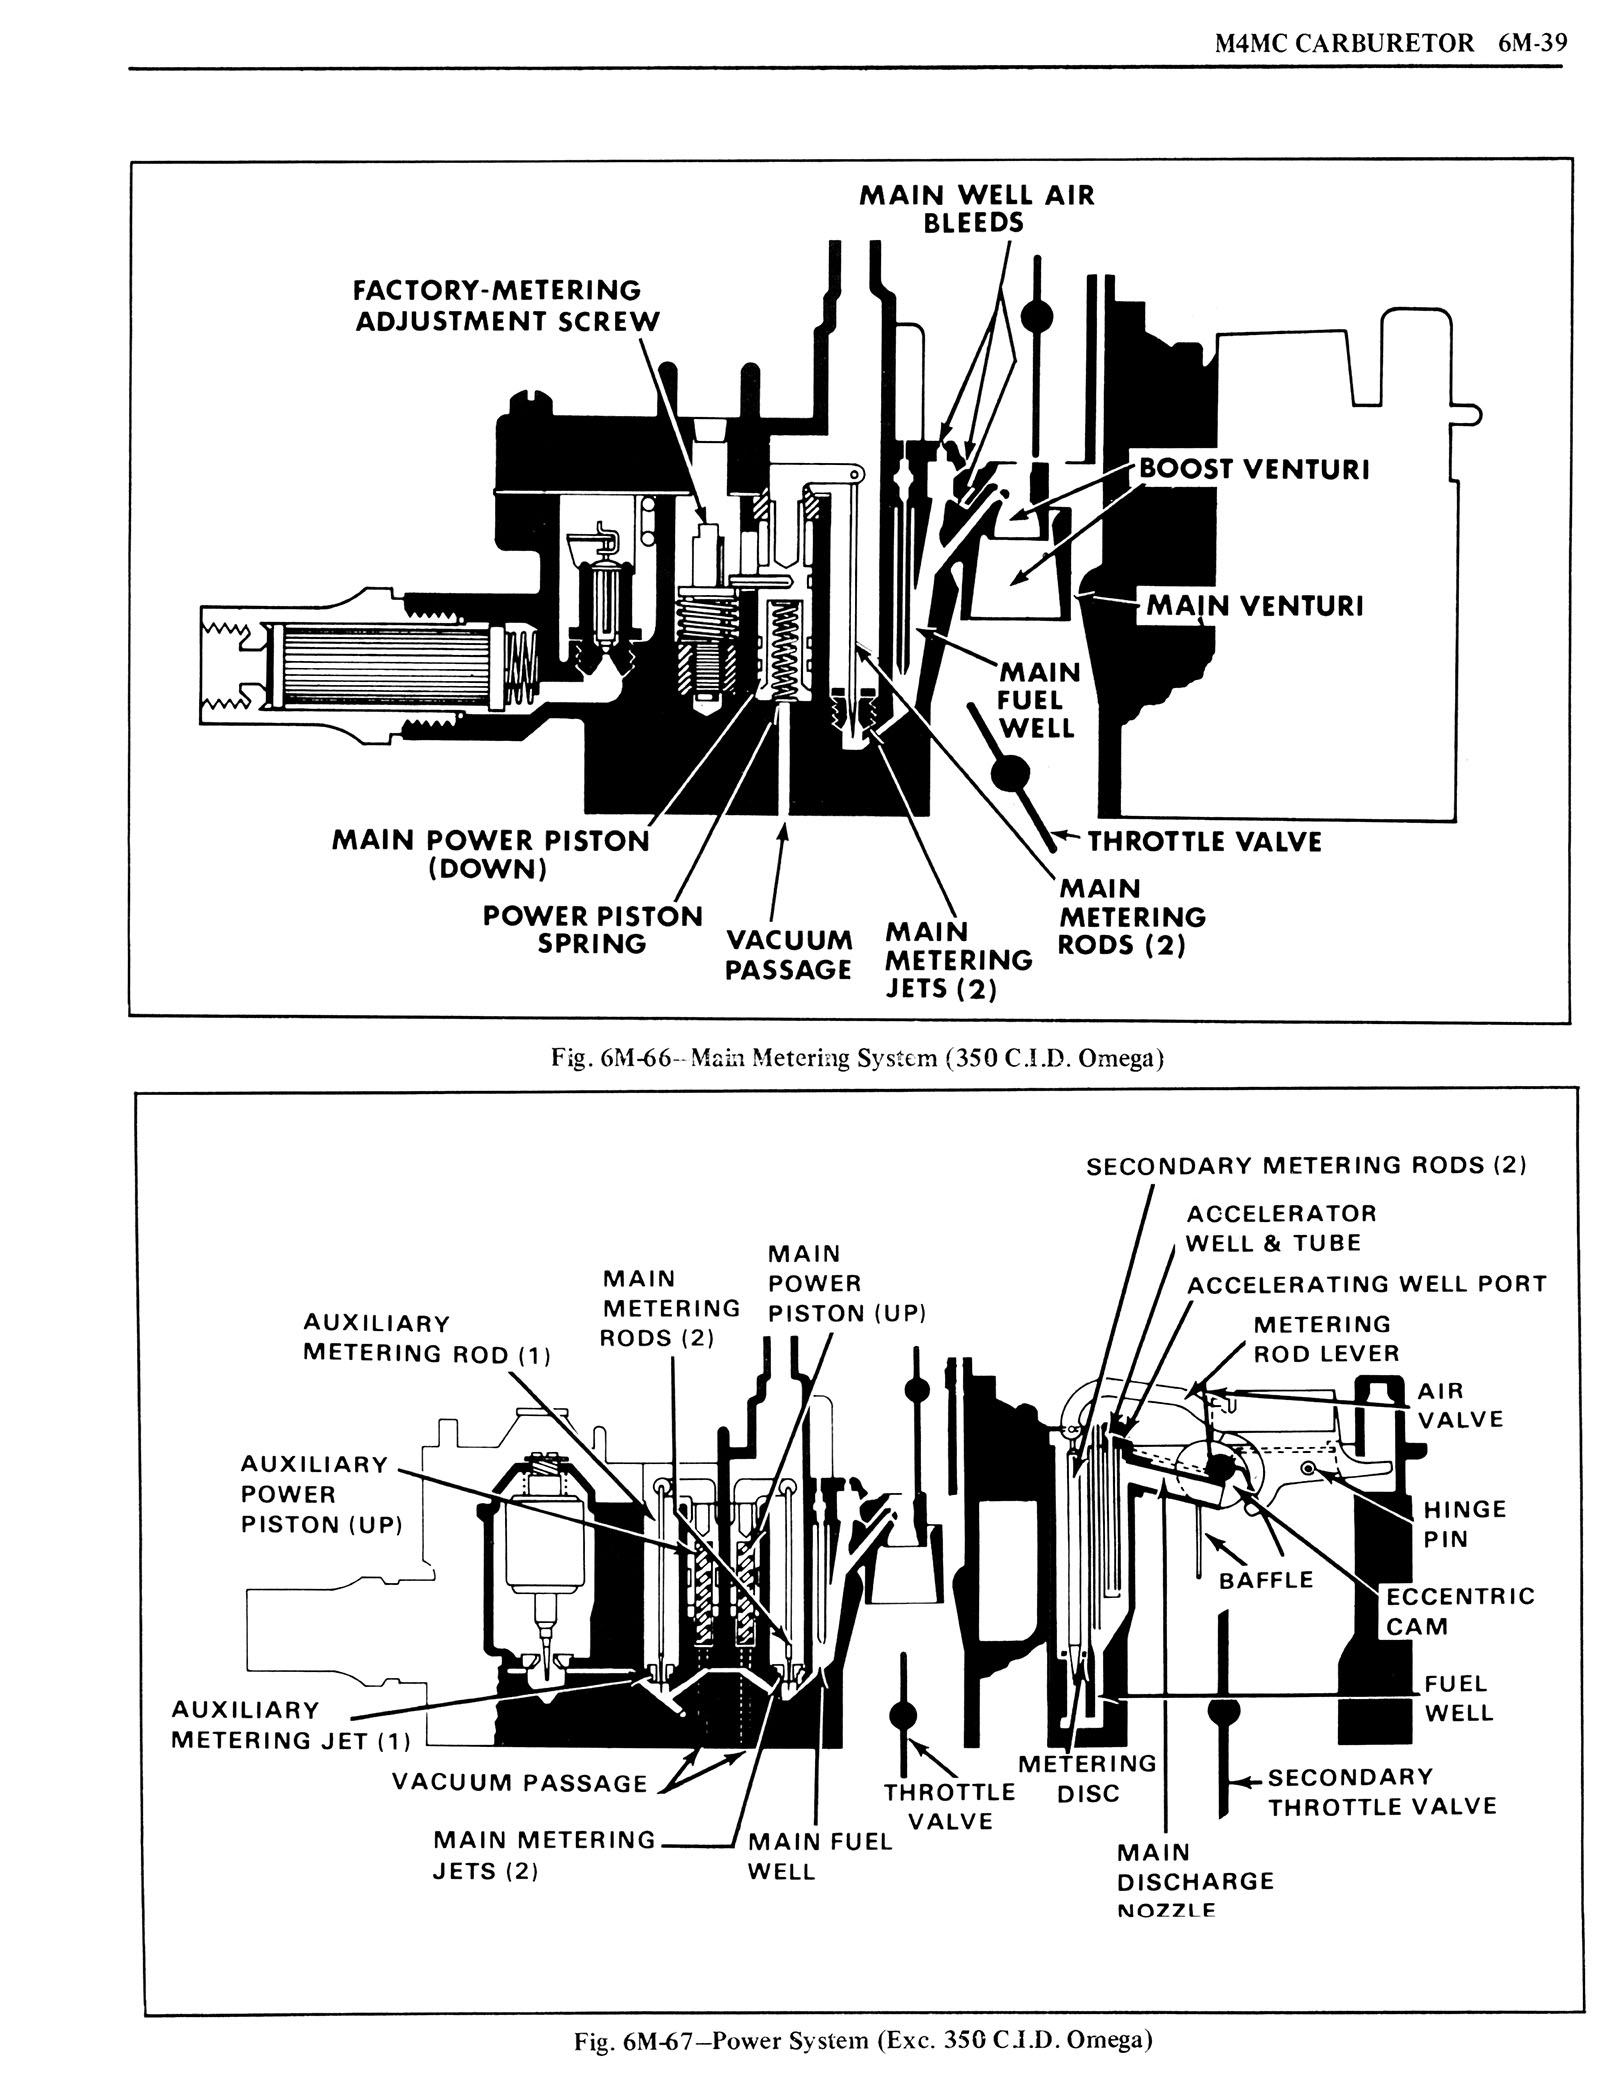 1976 Oldsmobile Service Manual page 593 of 1390